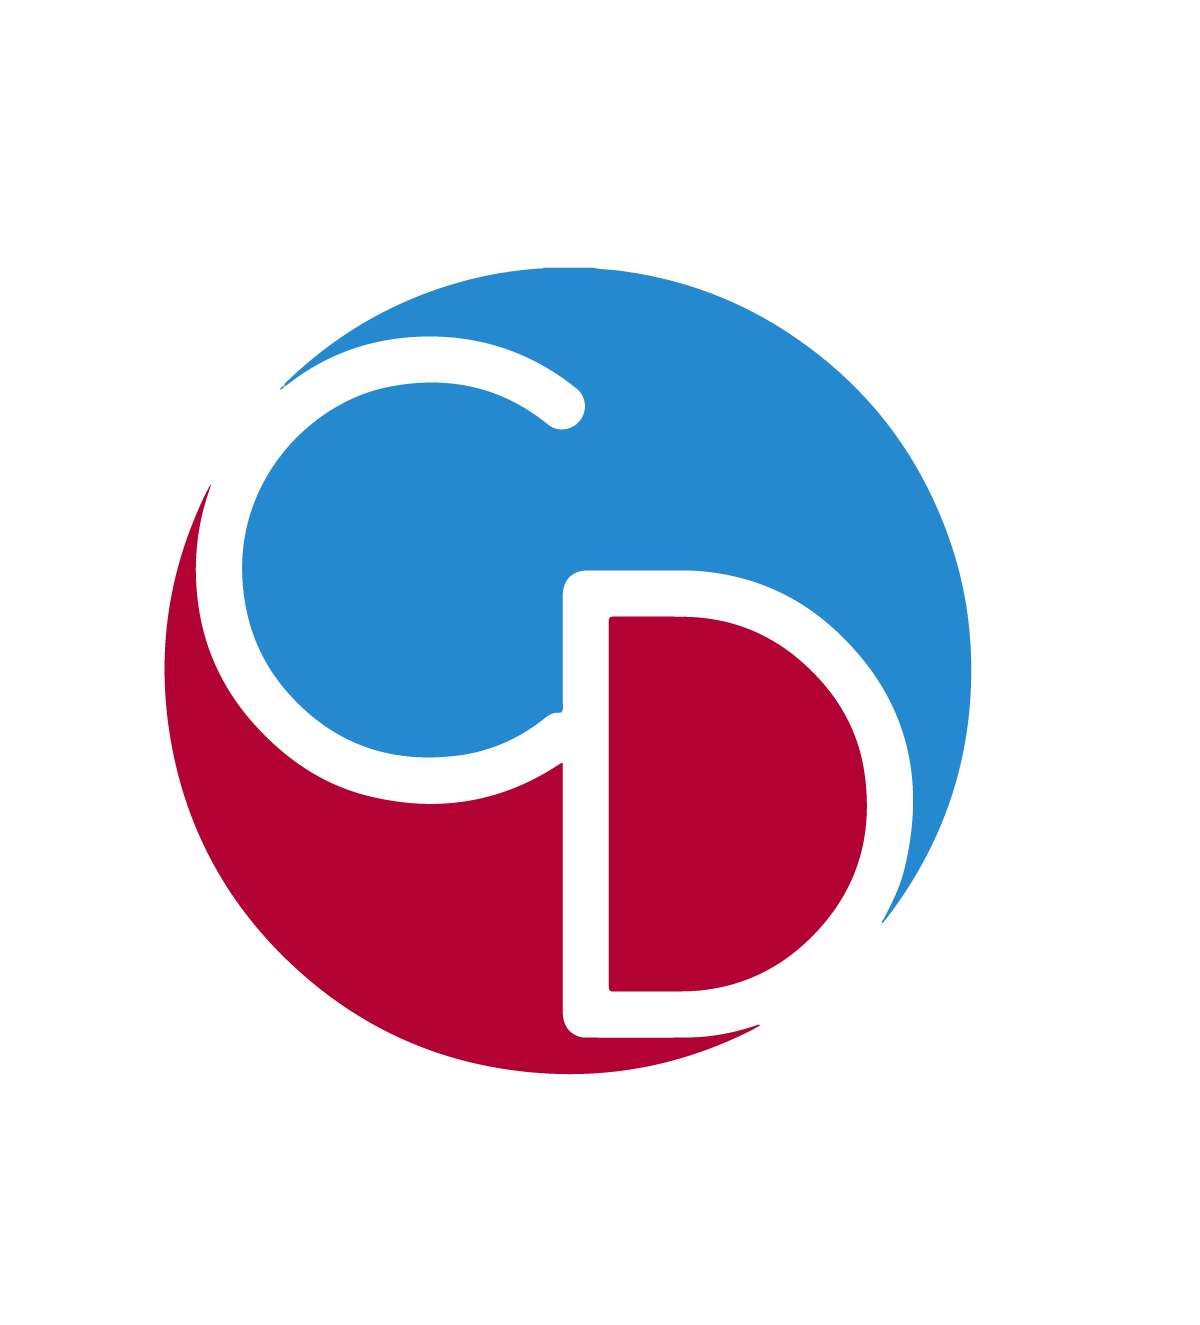 Cd_Round_Logo_Transparent.png